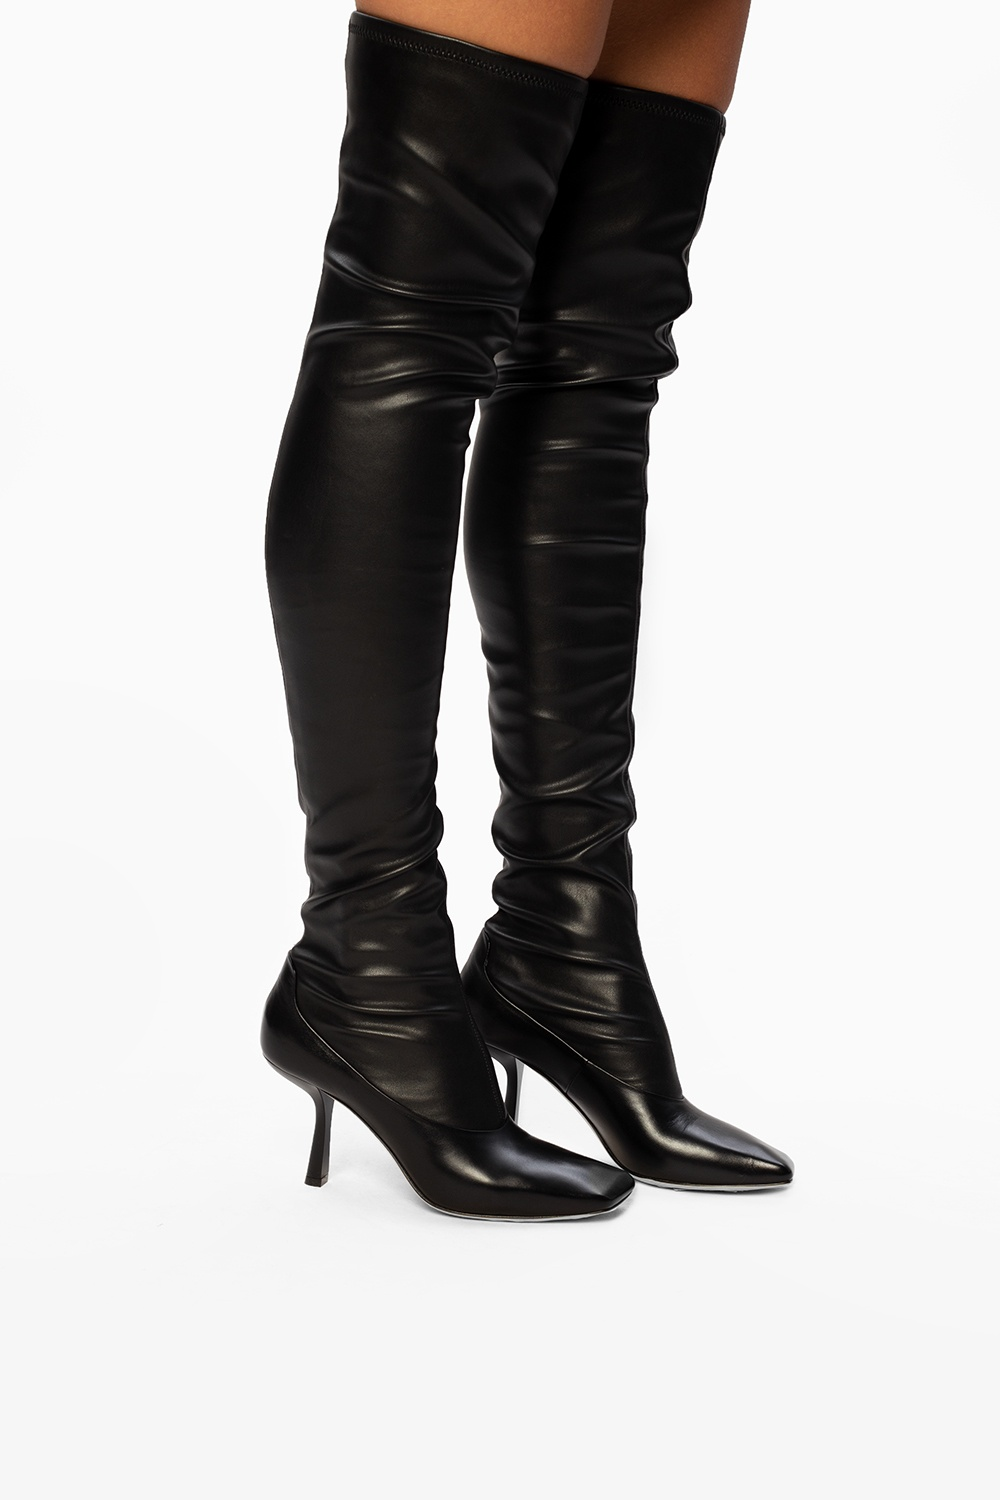 Jimmy Choo 'Mire' over-the-knee boots